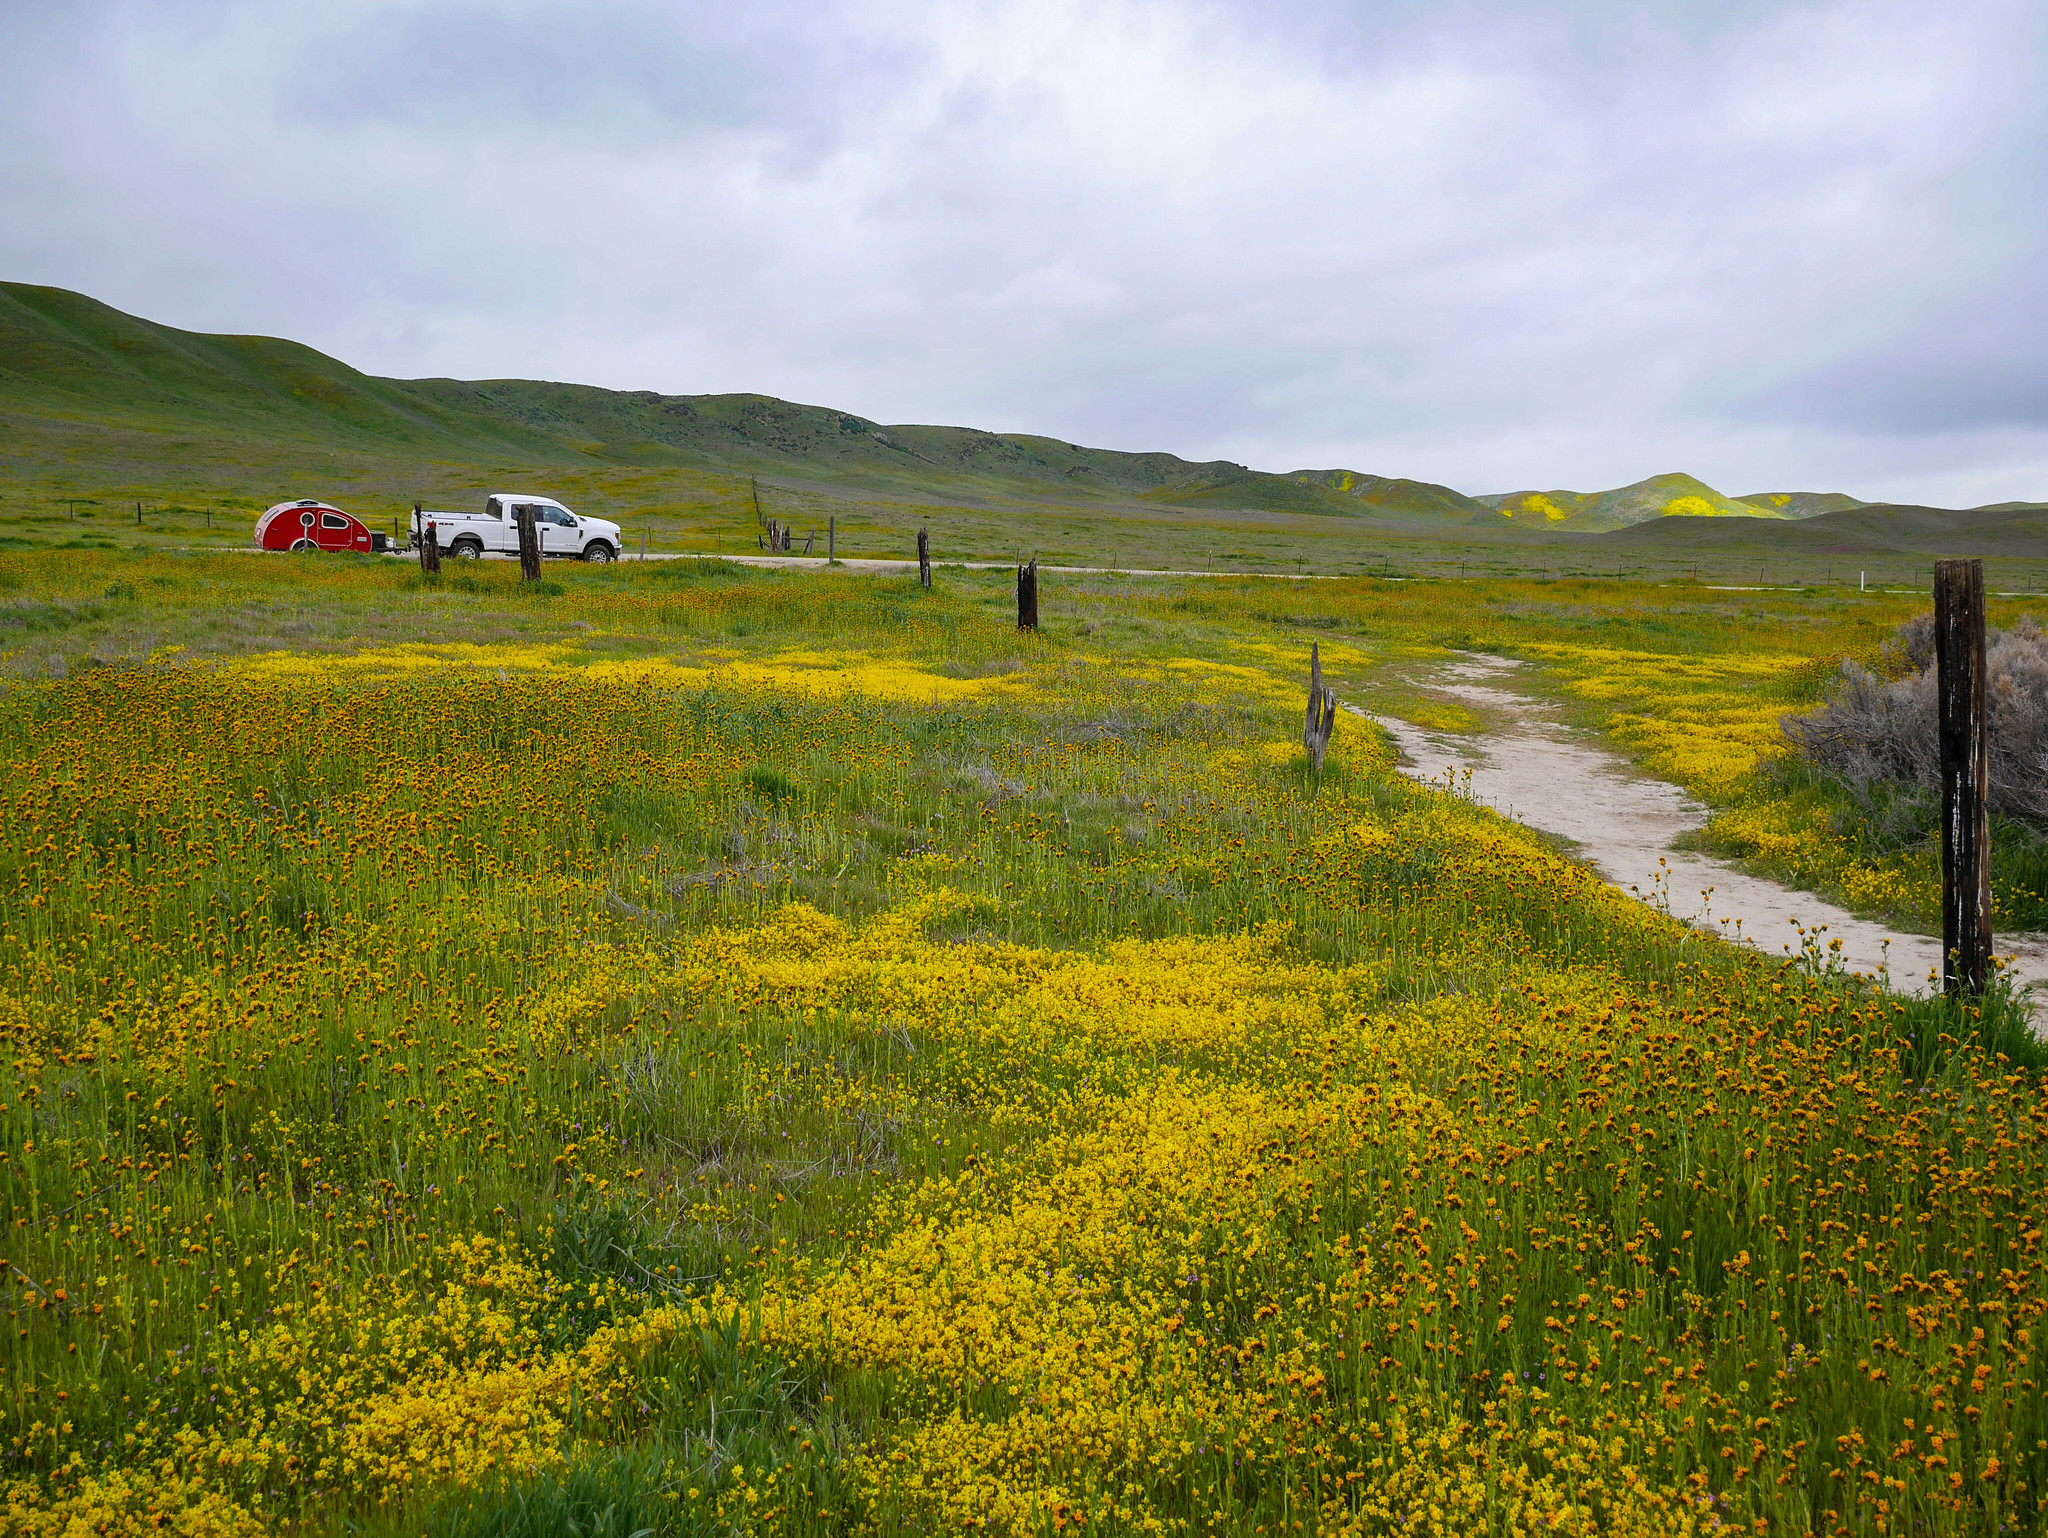 Carrizo Plain superbloom